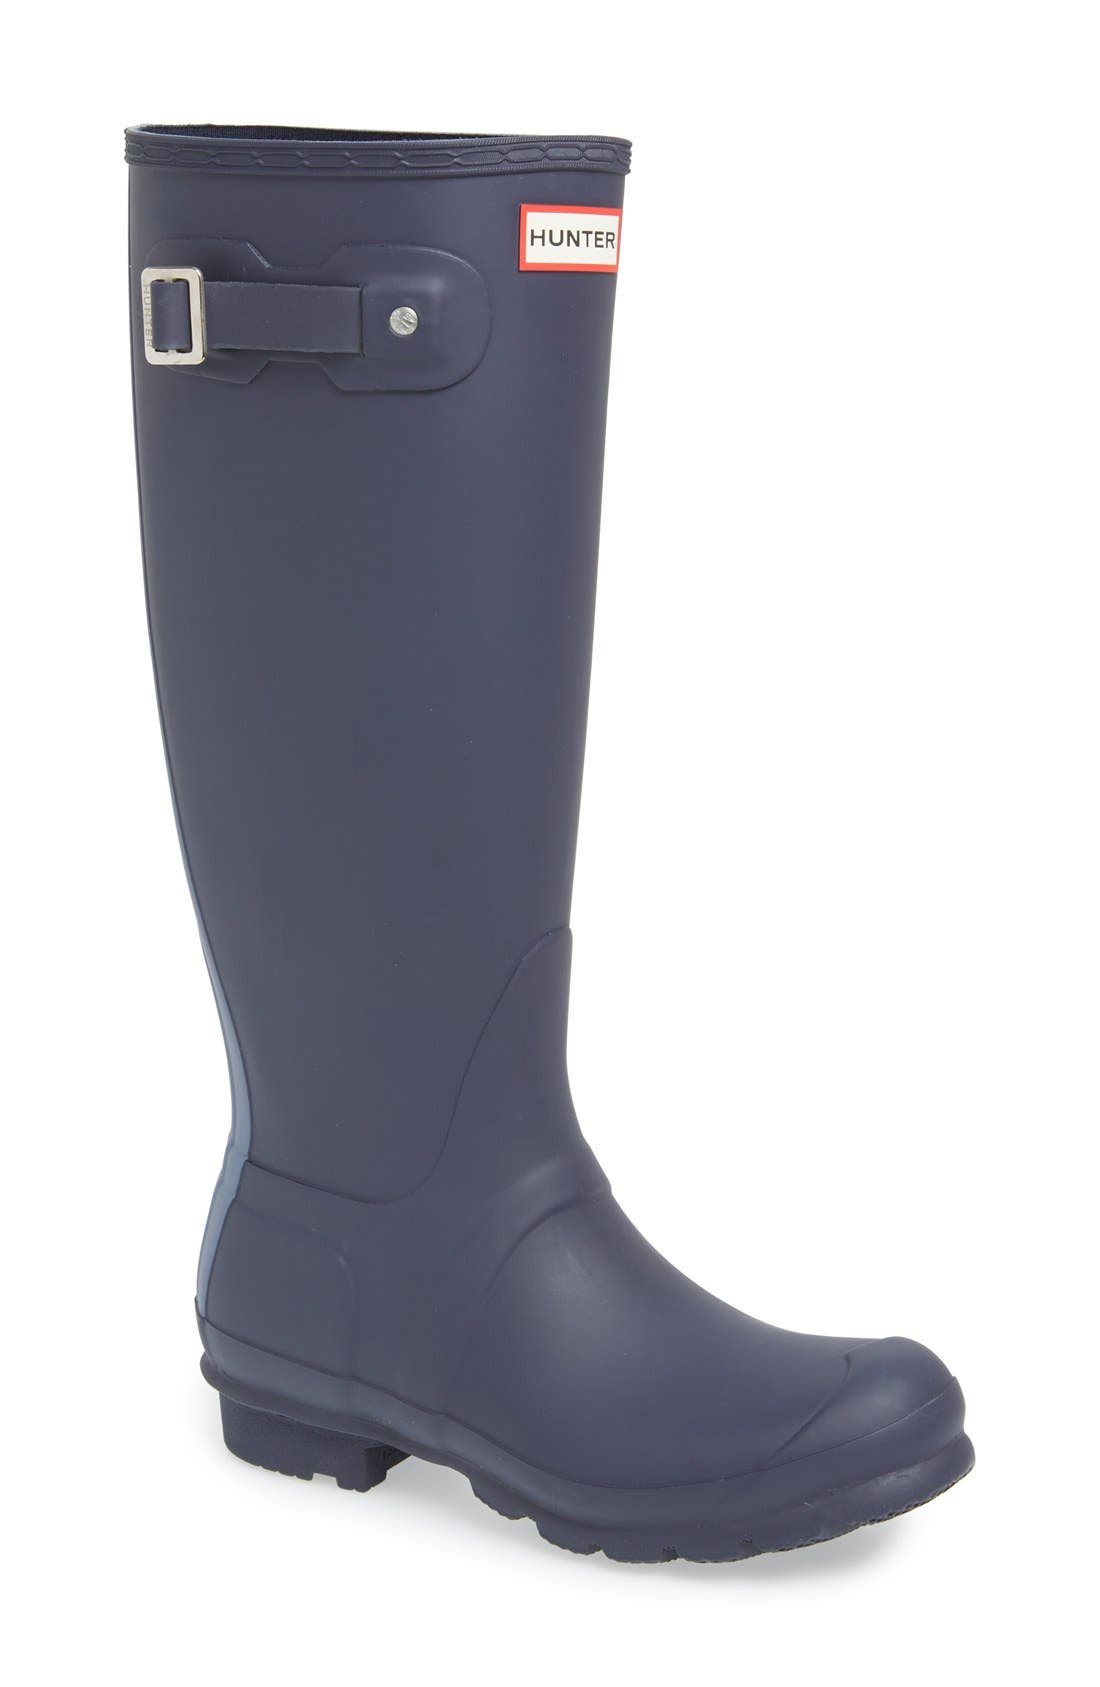 Main Image - Hunter 'Original Stripe' Waterproof Rubber Boot (Women)